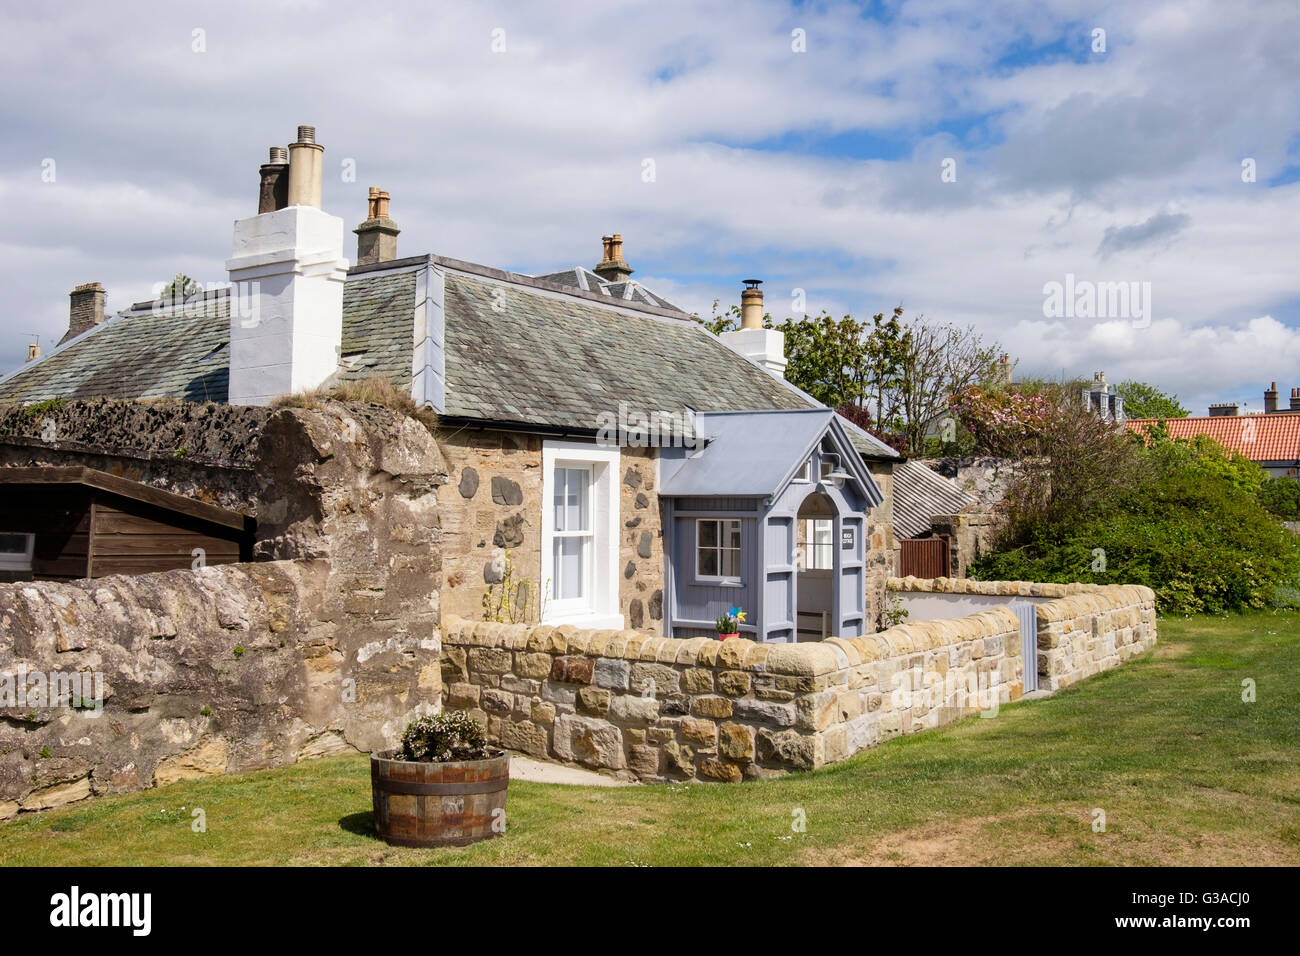 Quaint Stone Cottage With Wooden Porch And Small Walled Front Garden On Seafront In Village Of Elie Earlsferry Fife Scotland